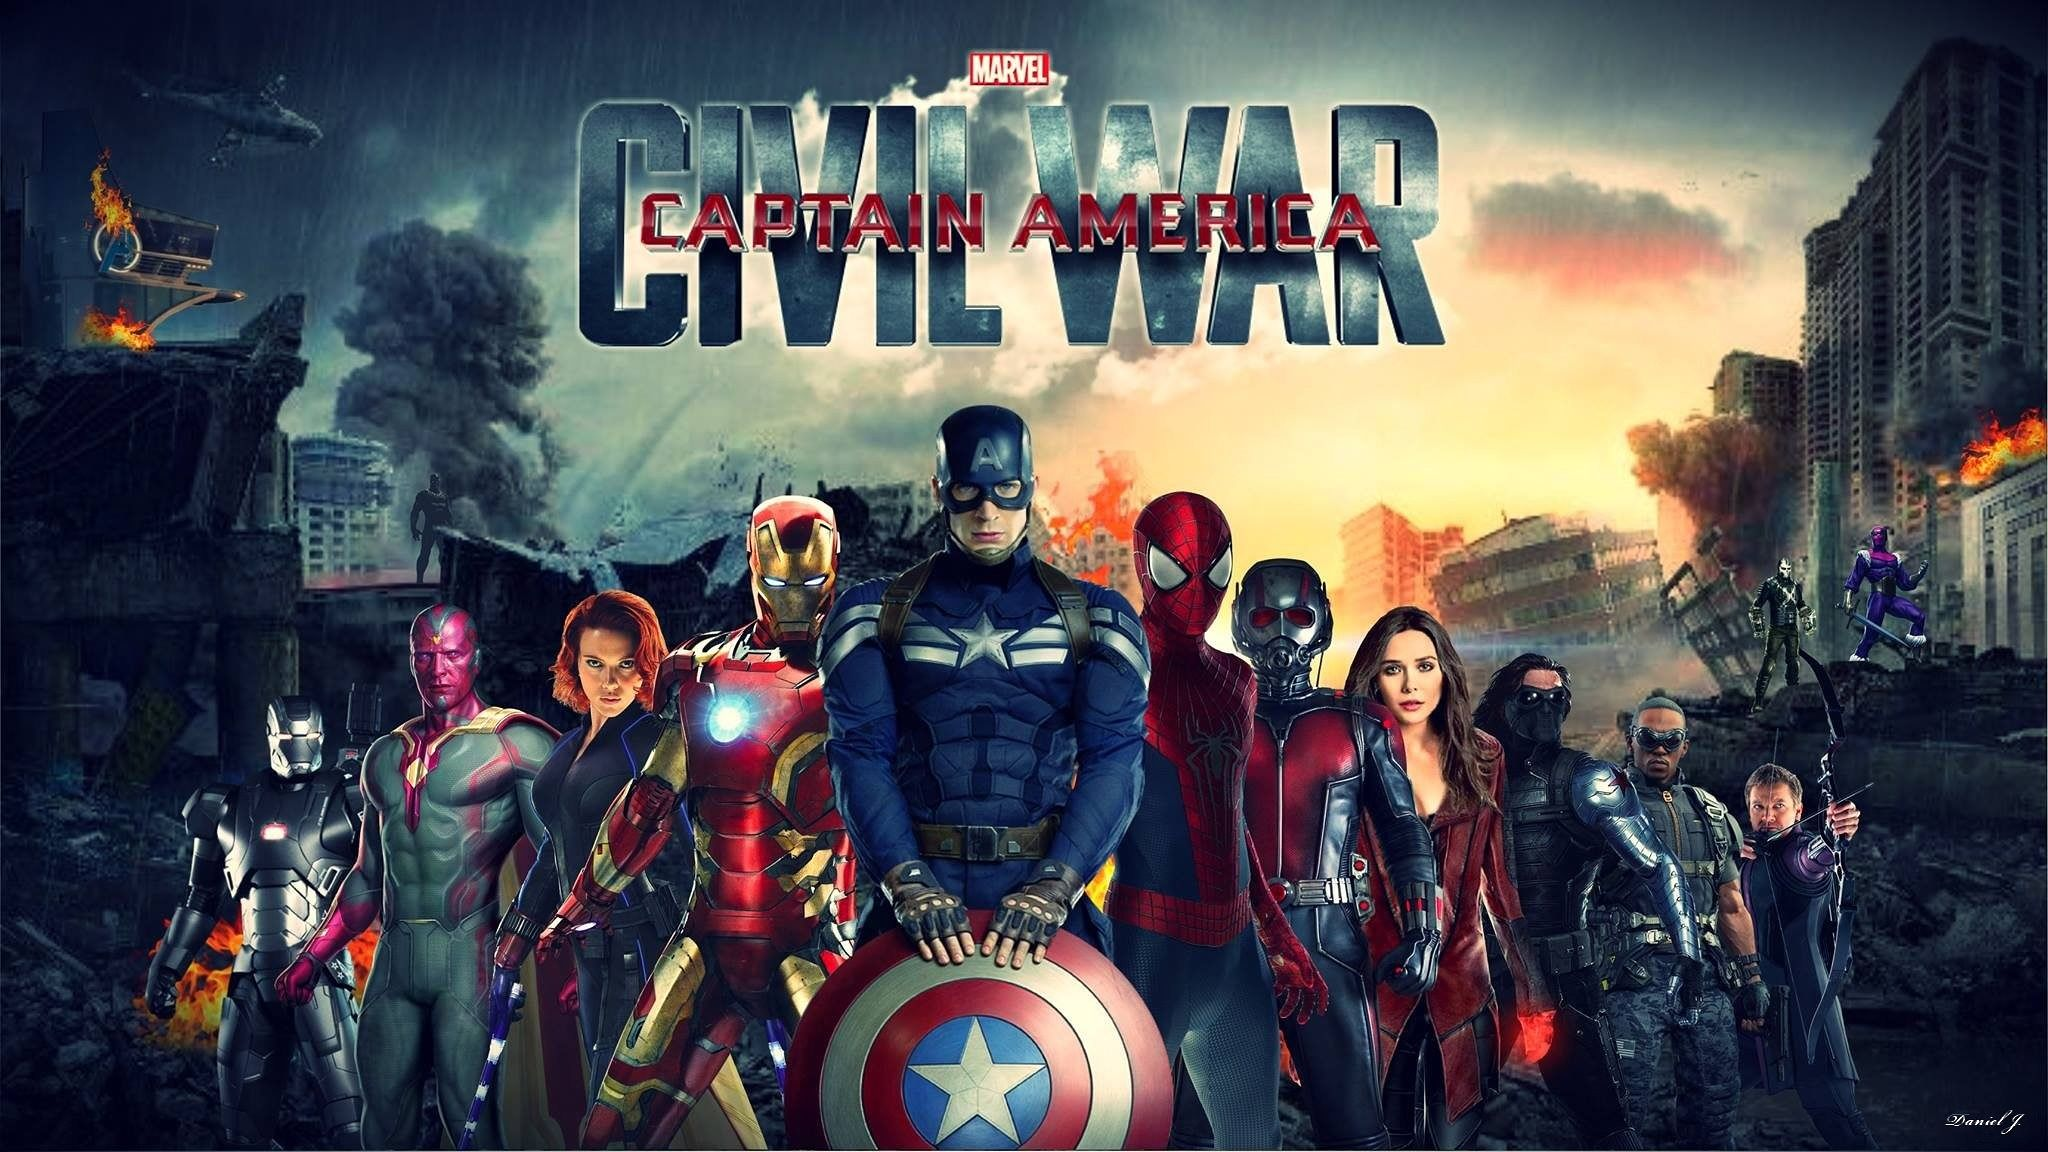 Captain America Civil War Movie Costumes